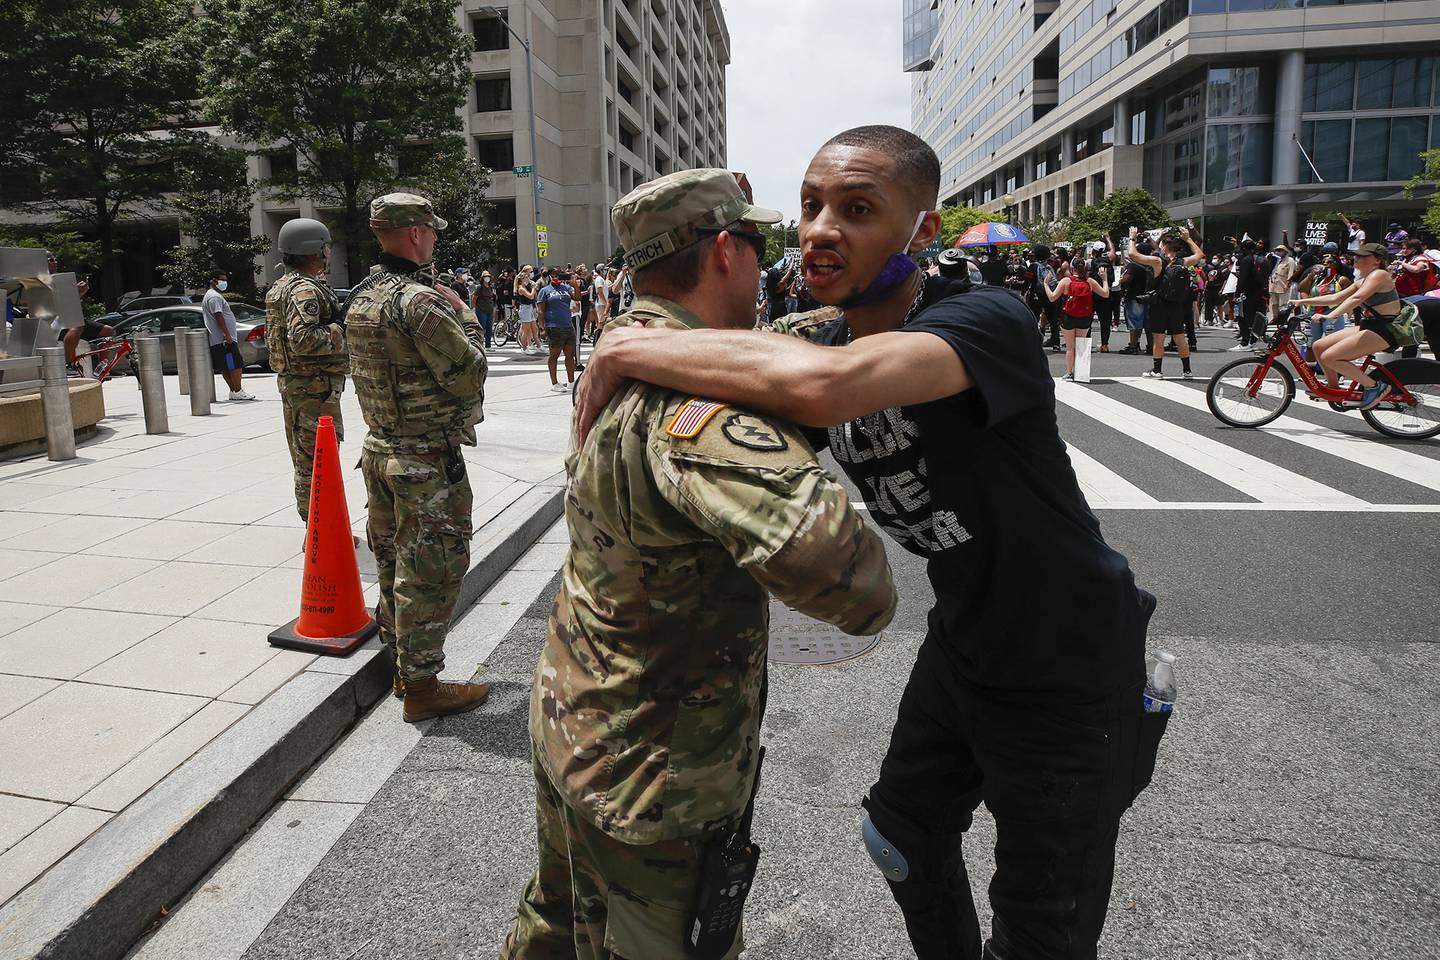 In this June 6, 2020, file photo, a demonstrator hugs a National Guard soldier during a protest  in Washington, over the death of George Floyd, a black man who was in police custody in Minneapolis.